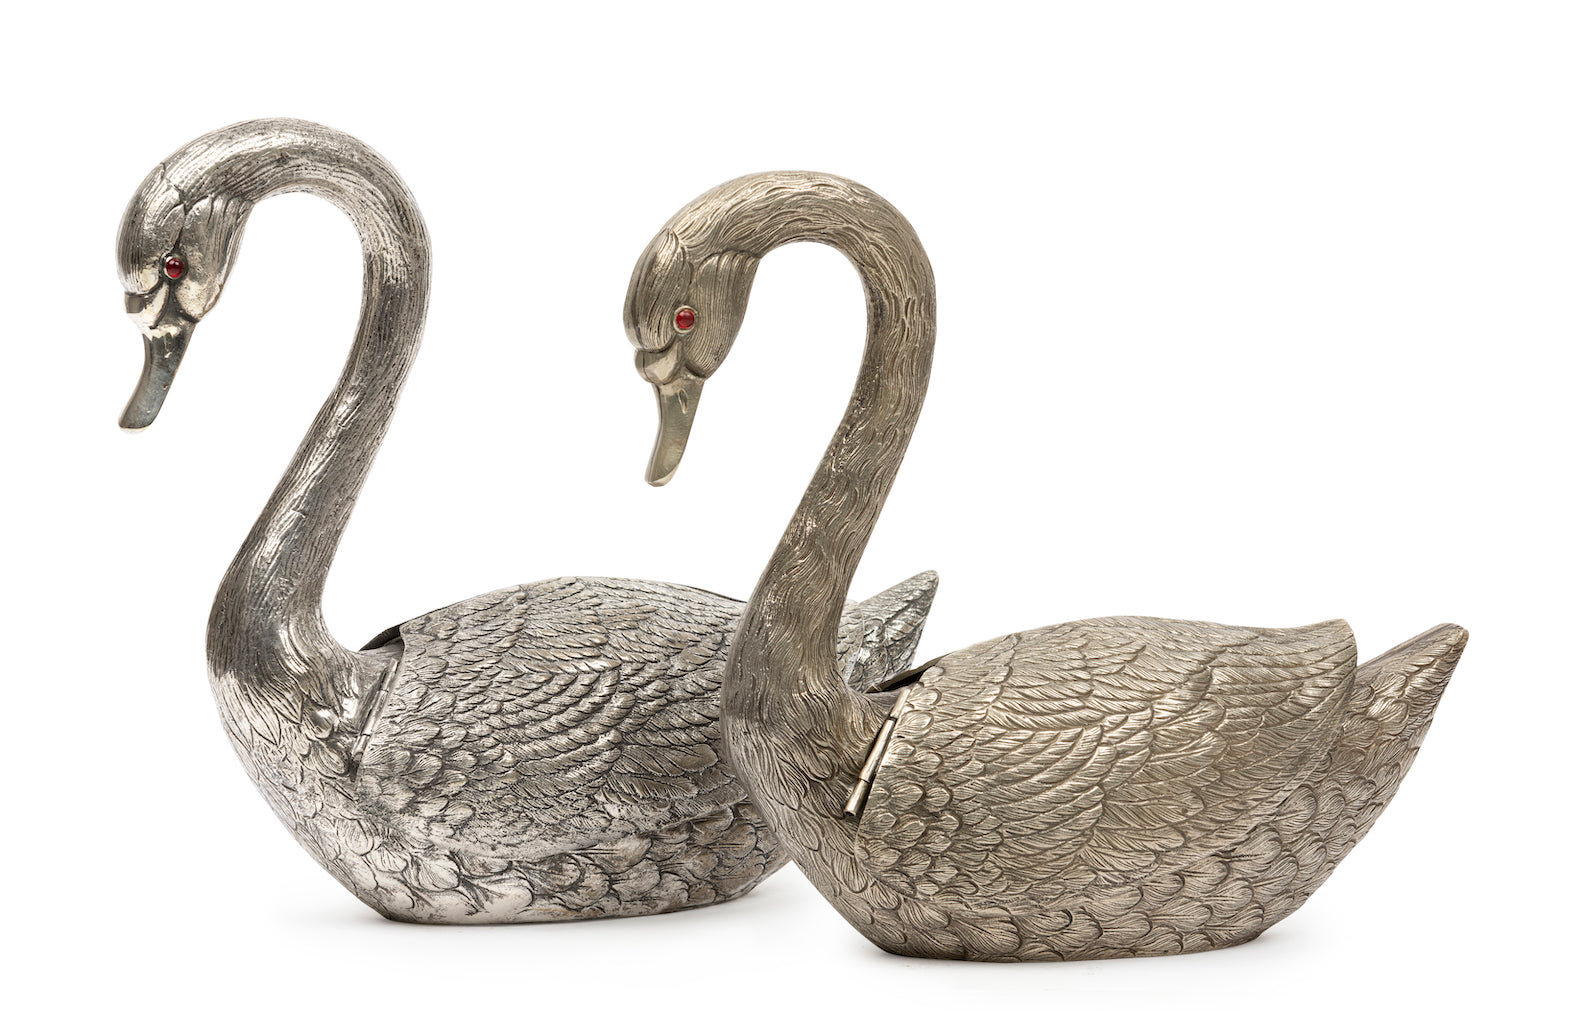 Two silver metal swan form vases with reticulated wings and glass eyes, Continental Circa 1900